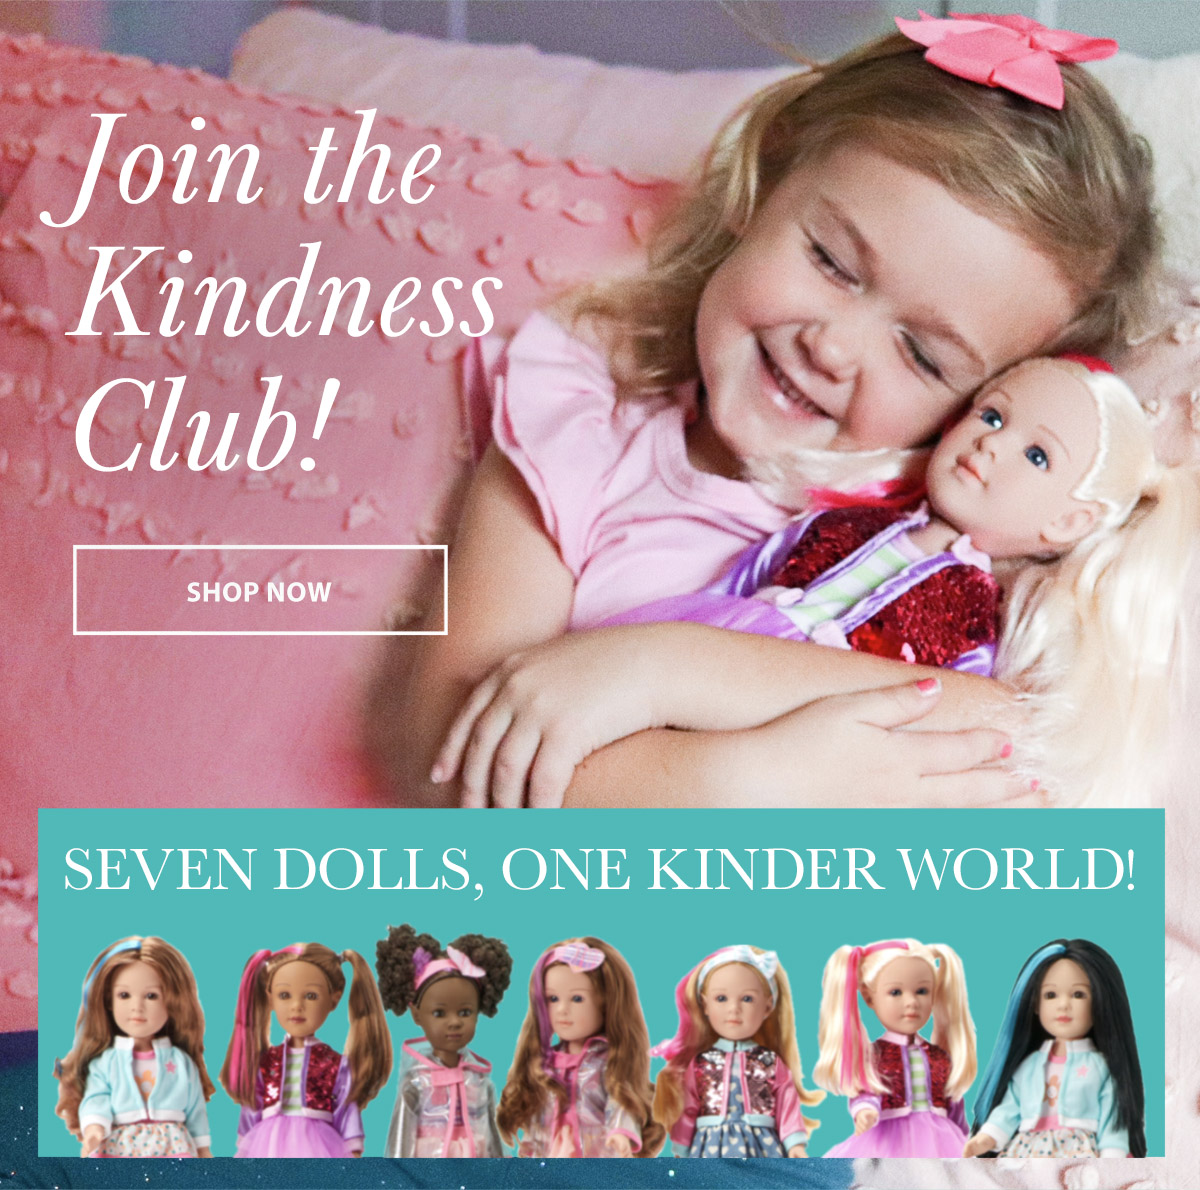 Click to buy Kindness Club dolls